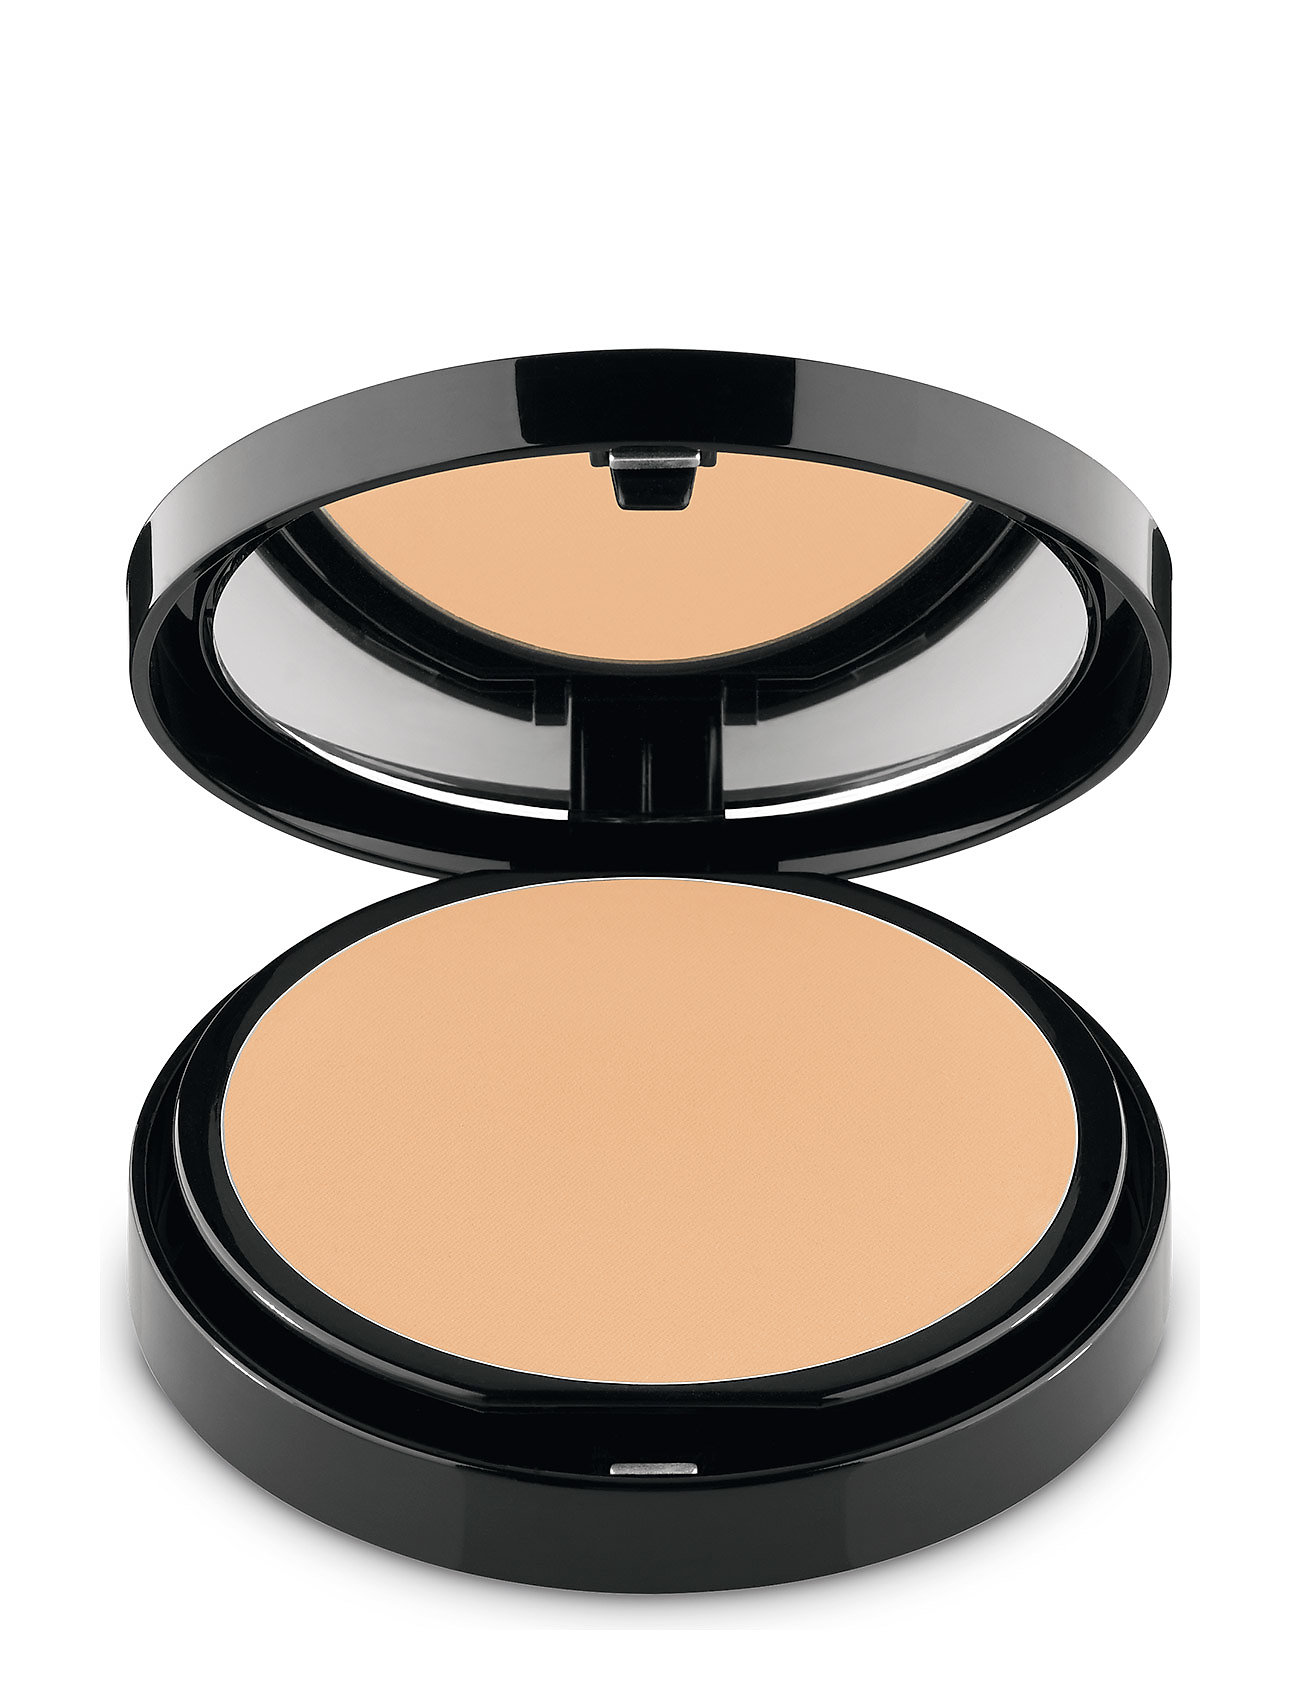 Image of Bareskin Perfecting Veil Pudder Makeup BareMinerals (3406150269)